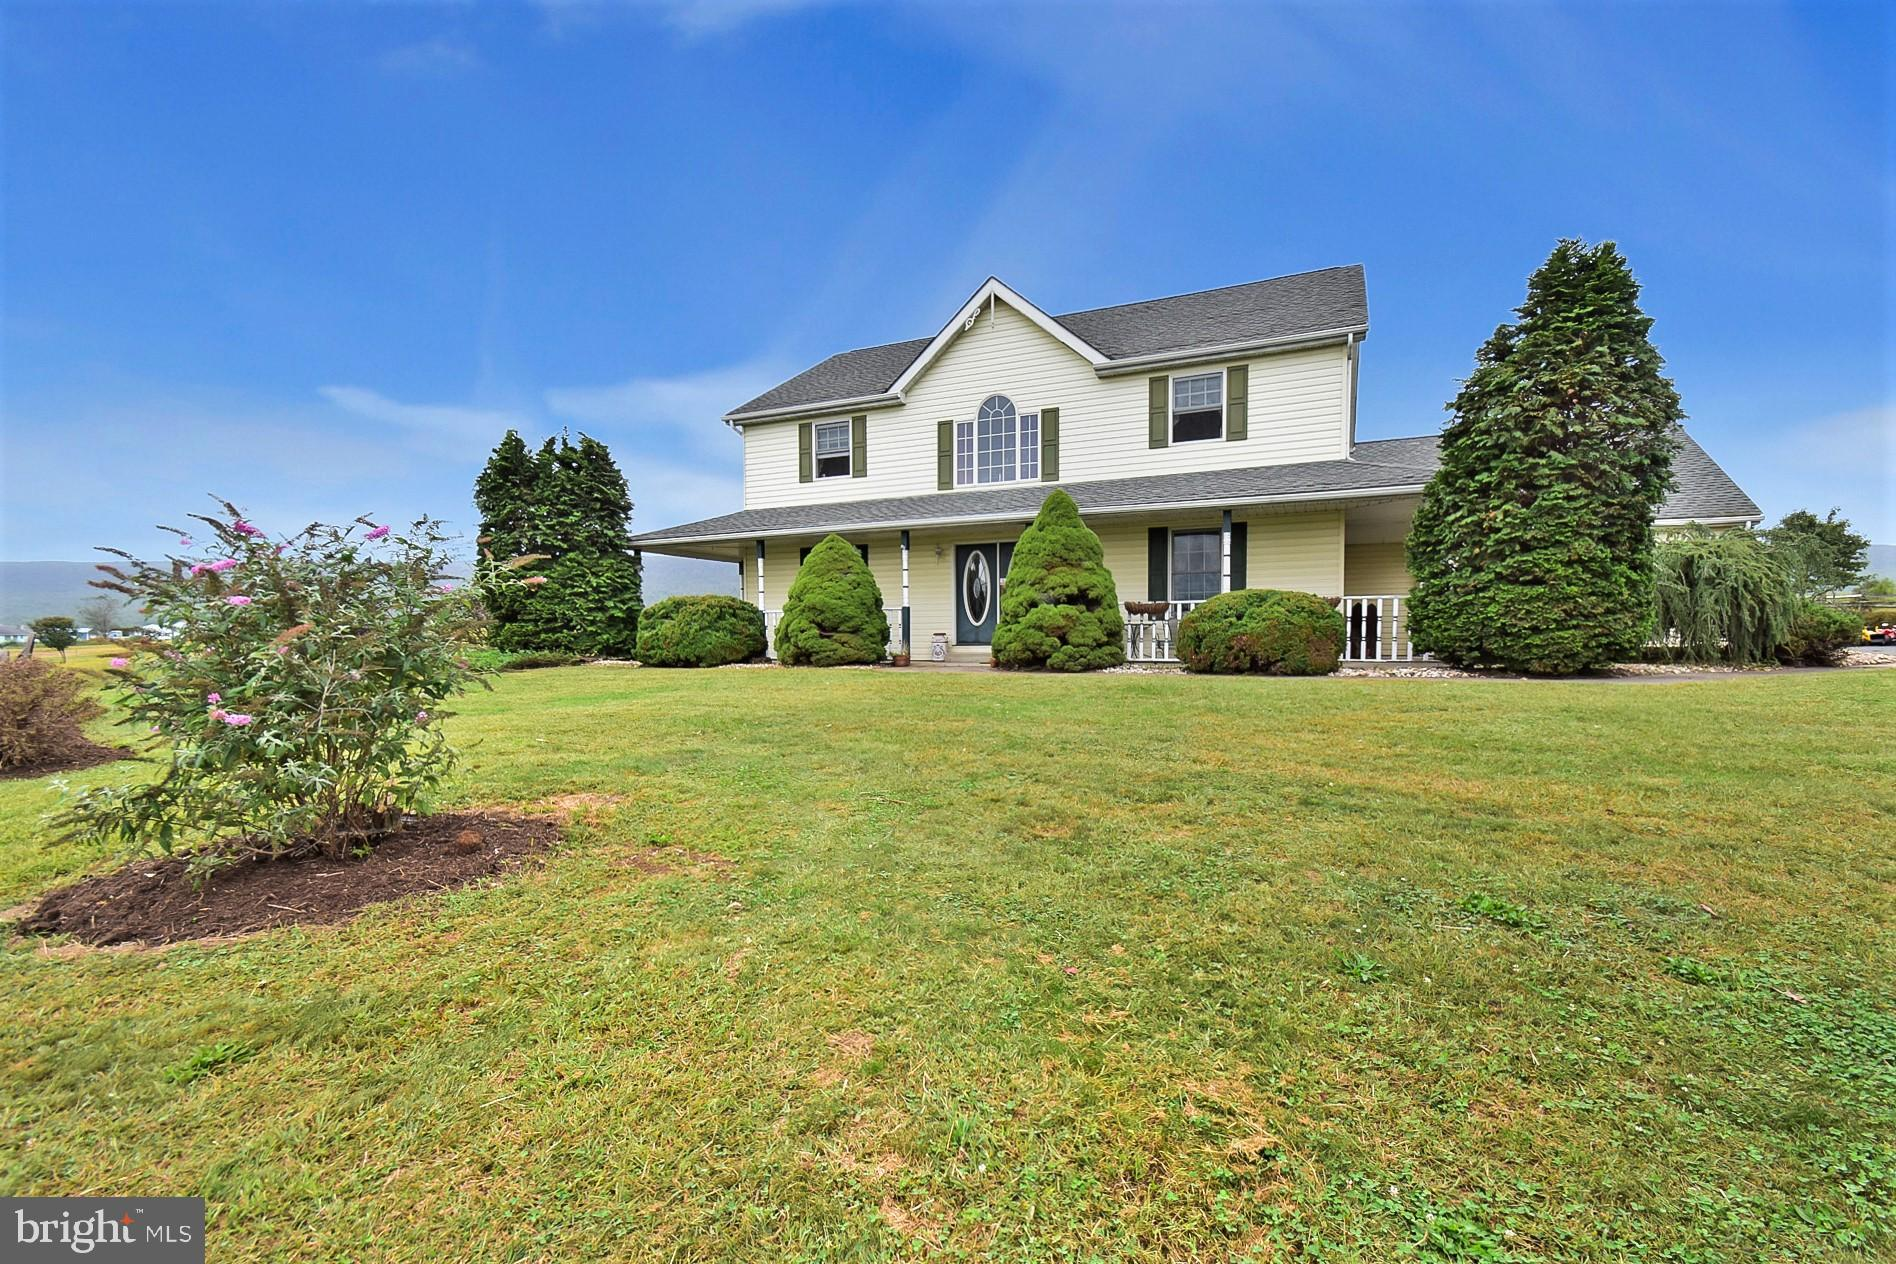 7437-7445 BEHLER ROAD, NEW TRIPOLI, PA 18066